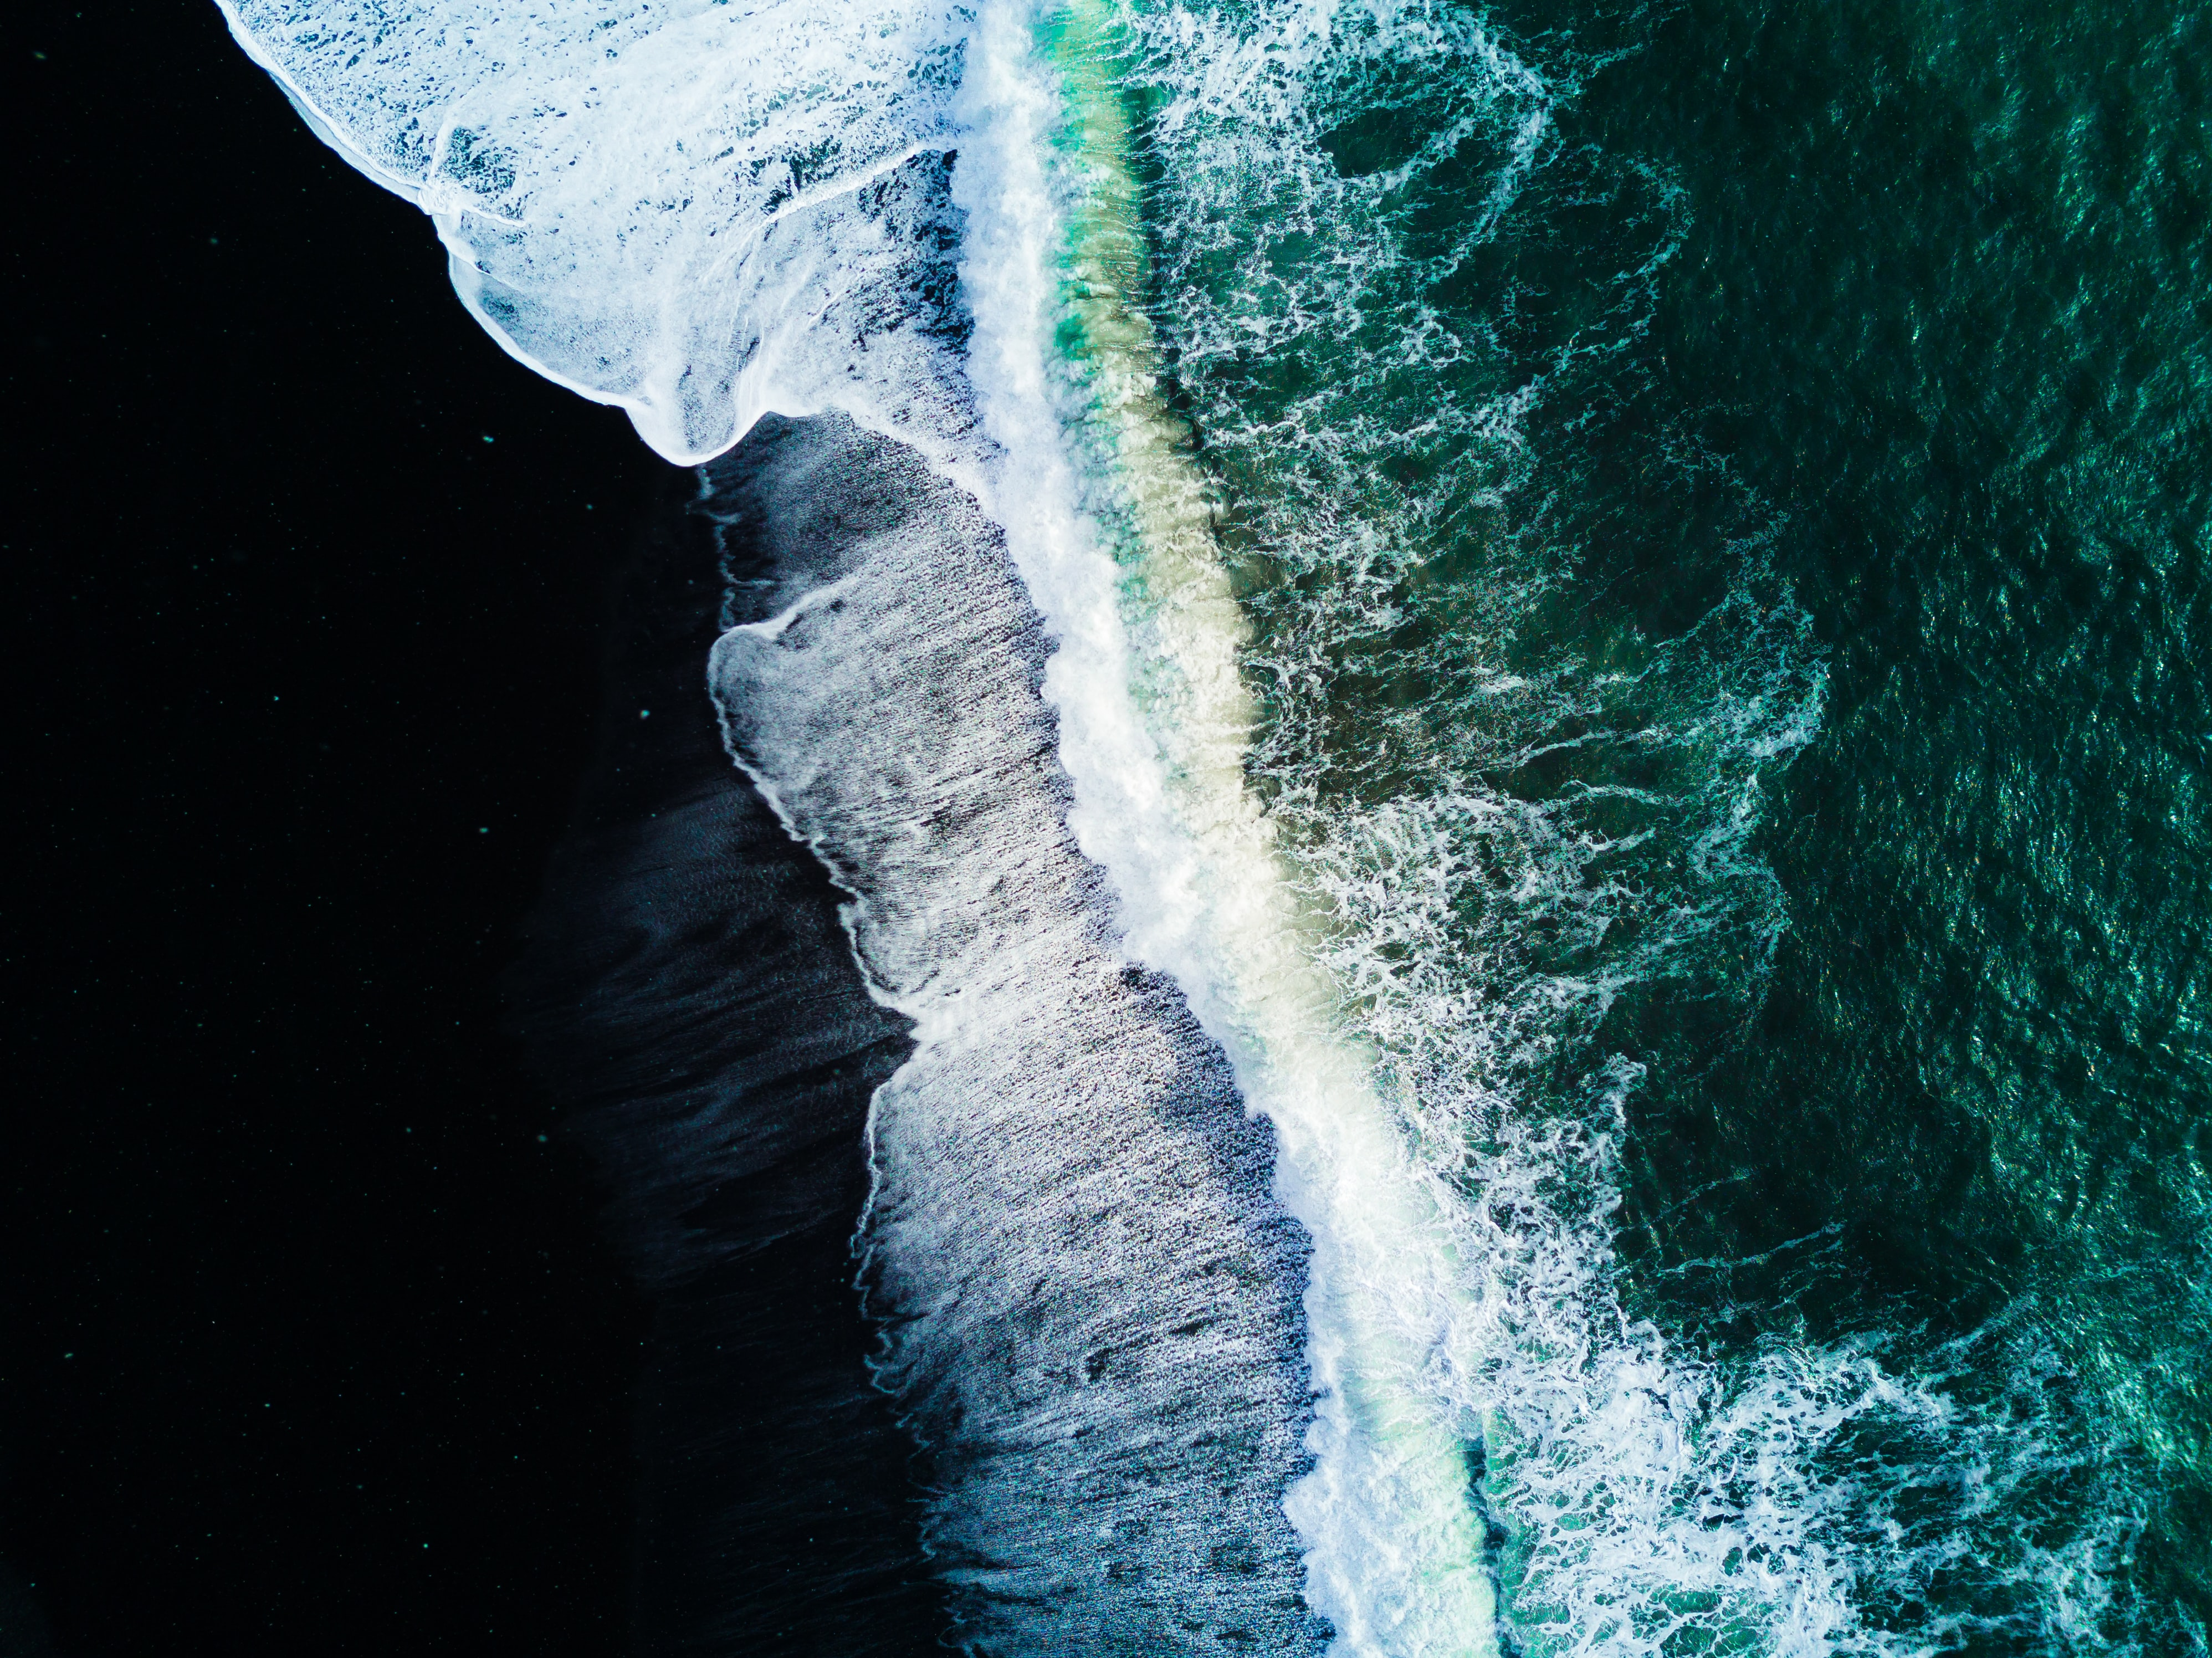 waves on body of water